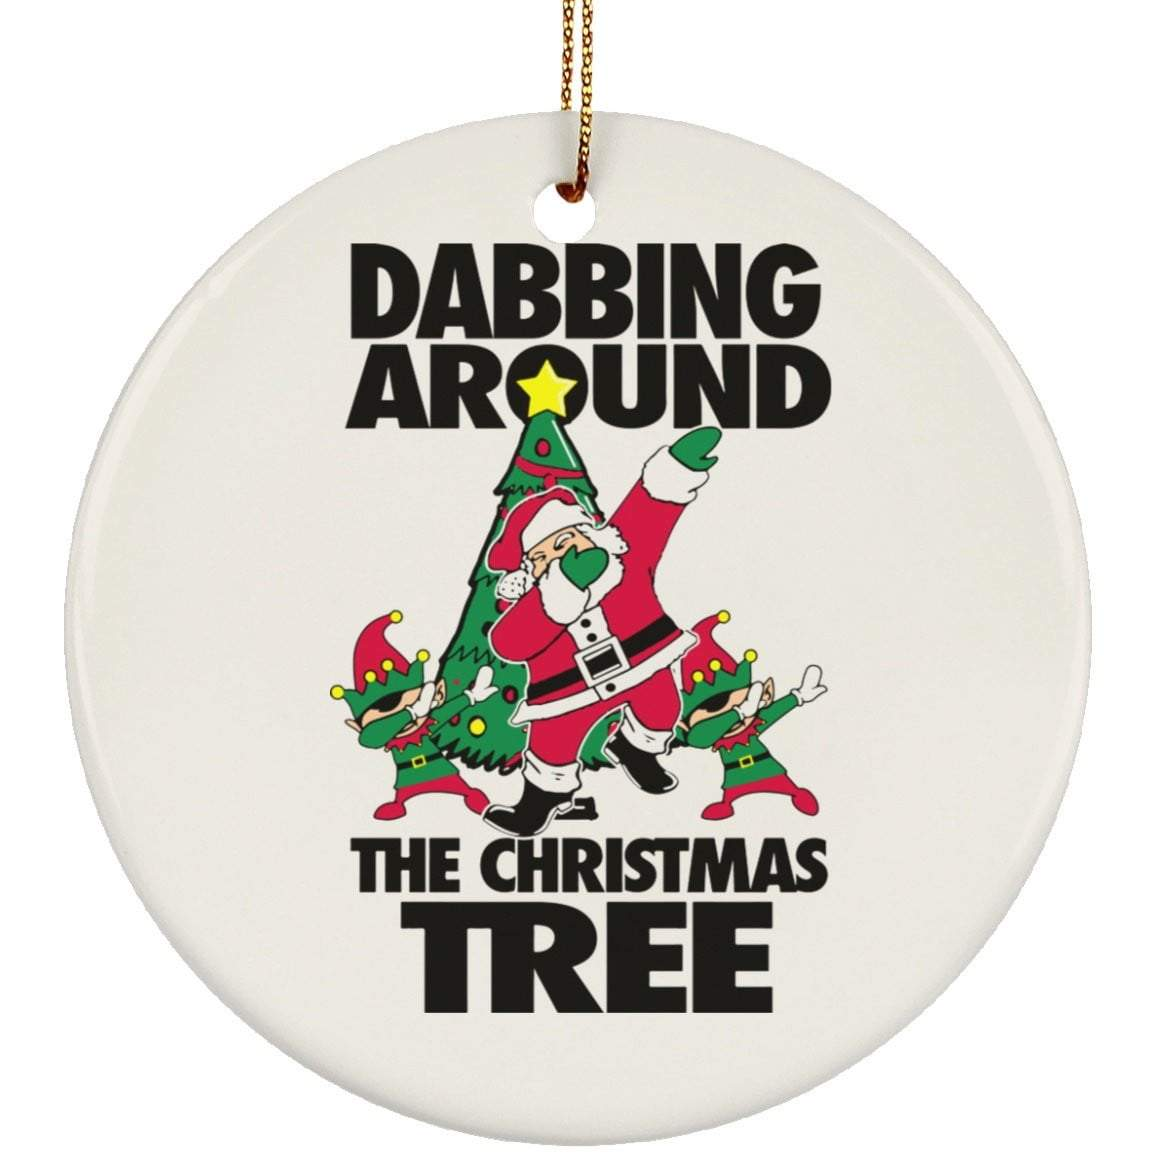 DABBING AROUND TREE Christmas Ceramic Circle Ornament